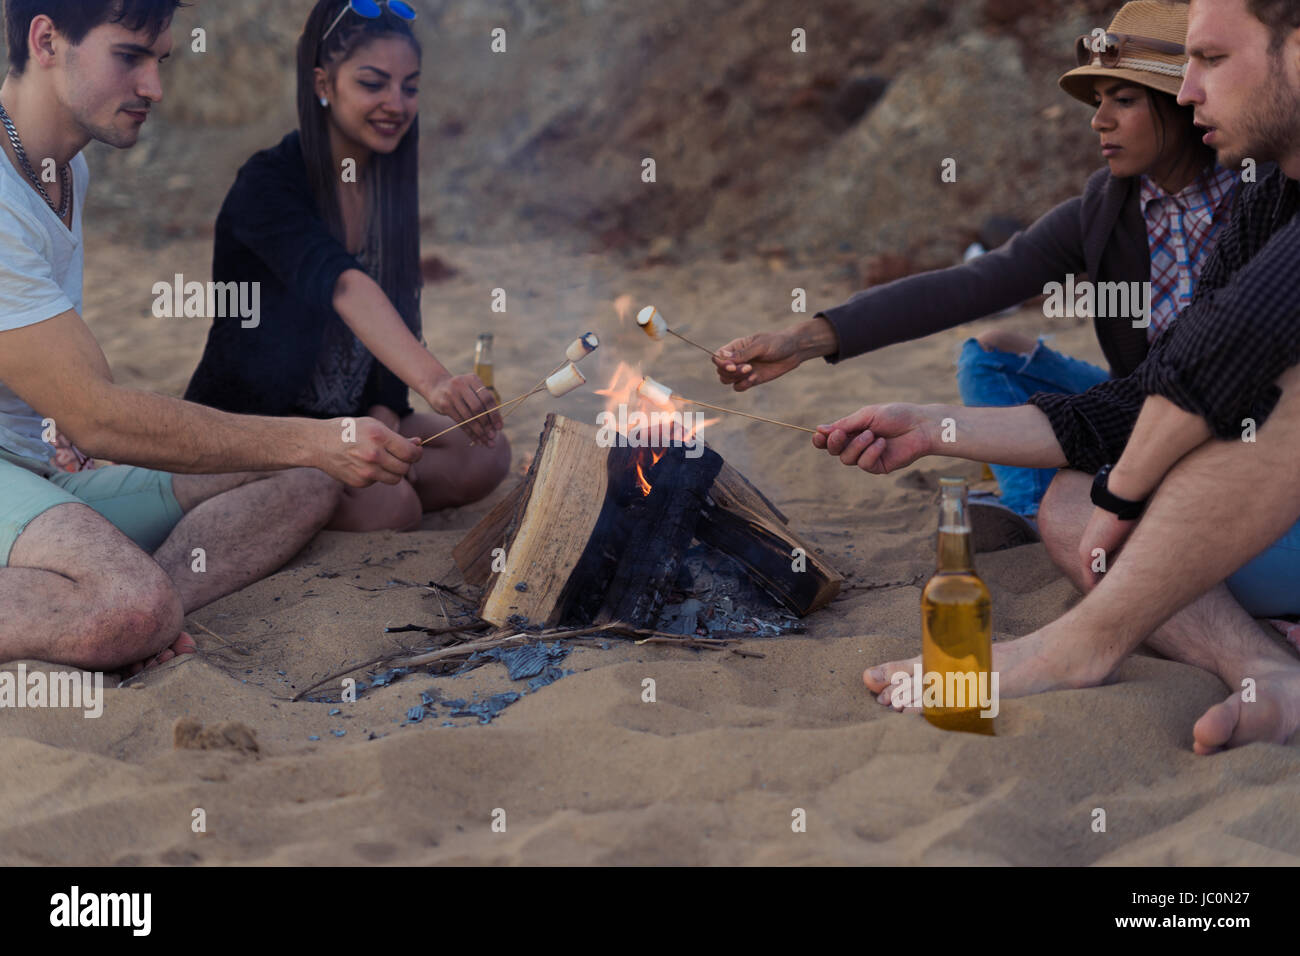 Friends on a wild beach lit a bonfire and fry marshmallows - Stock Image